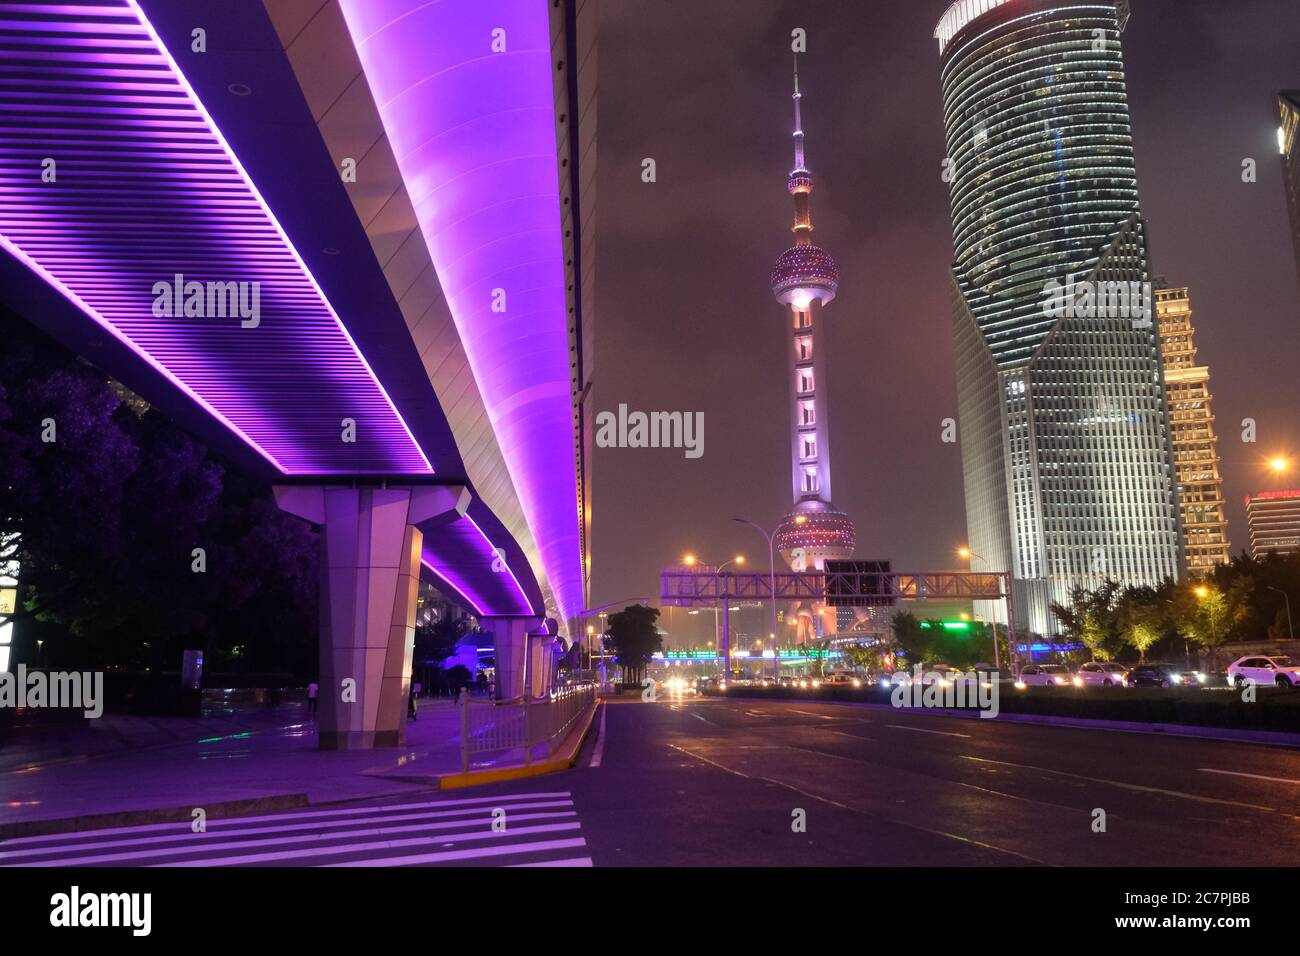 night scene of modern Shanghai Pudong. Highway under shining purple overpass. Famous Oriental Pearl TV Tower and buildings Stock Photo